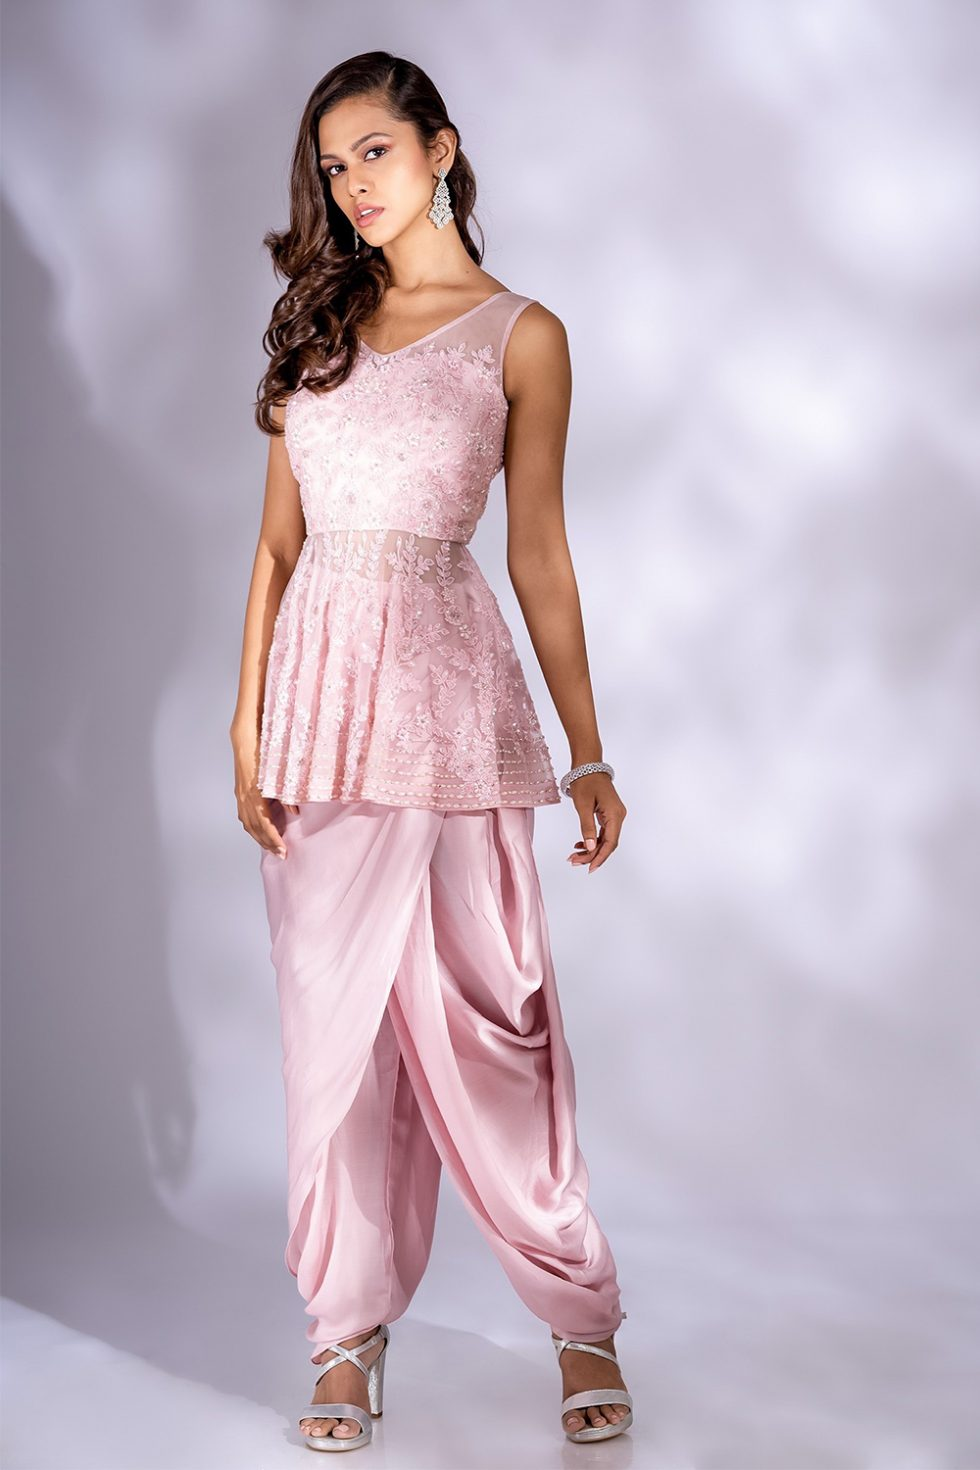 Petal pink draped dhoti set with a peplum style top with self coloured hand embroidery.